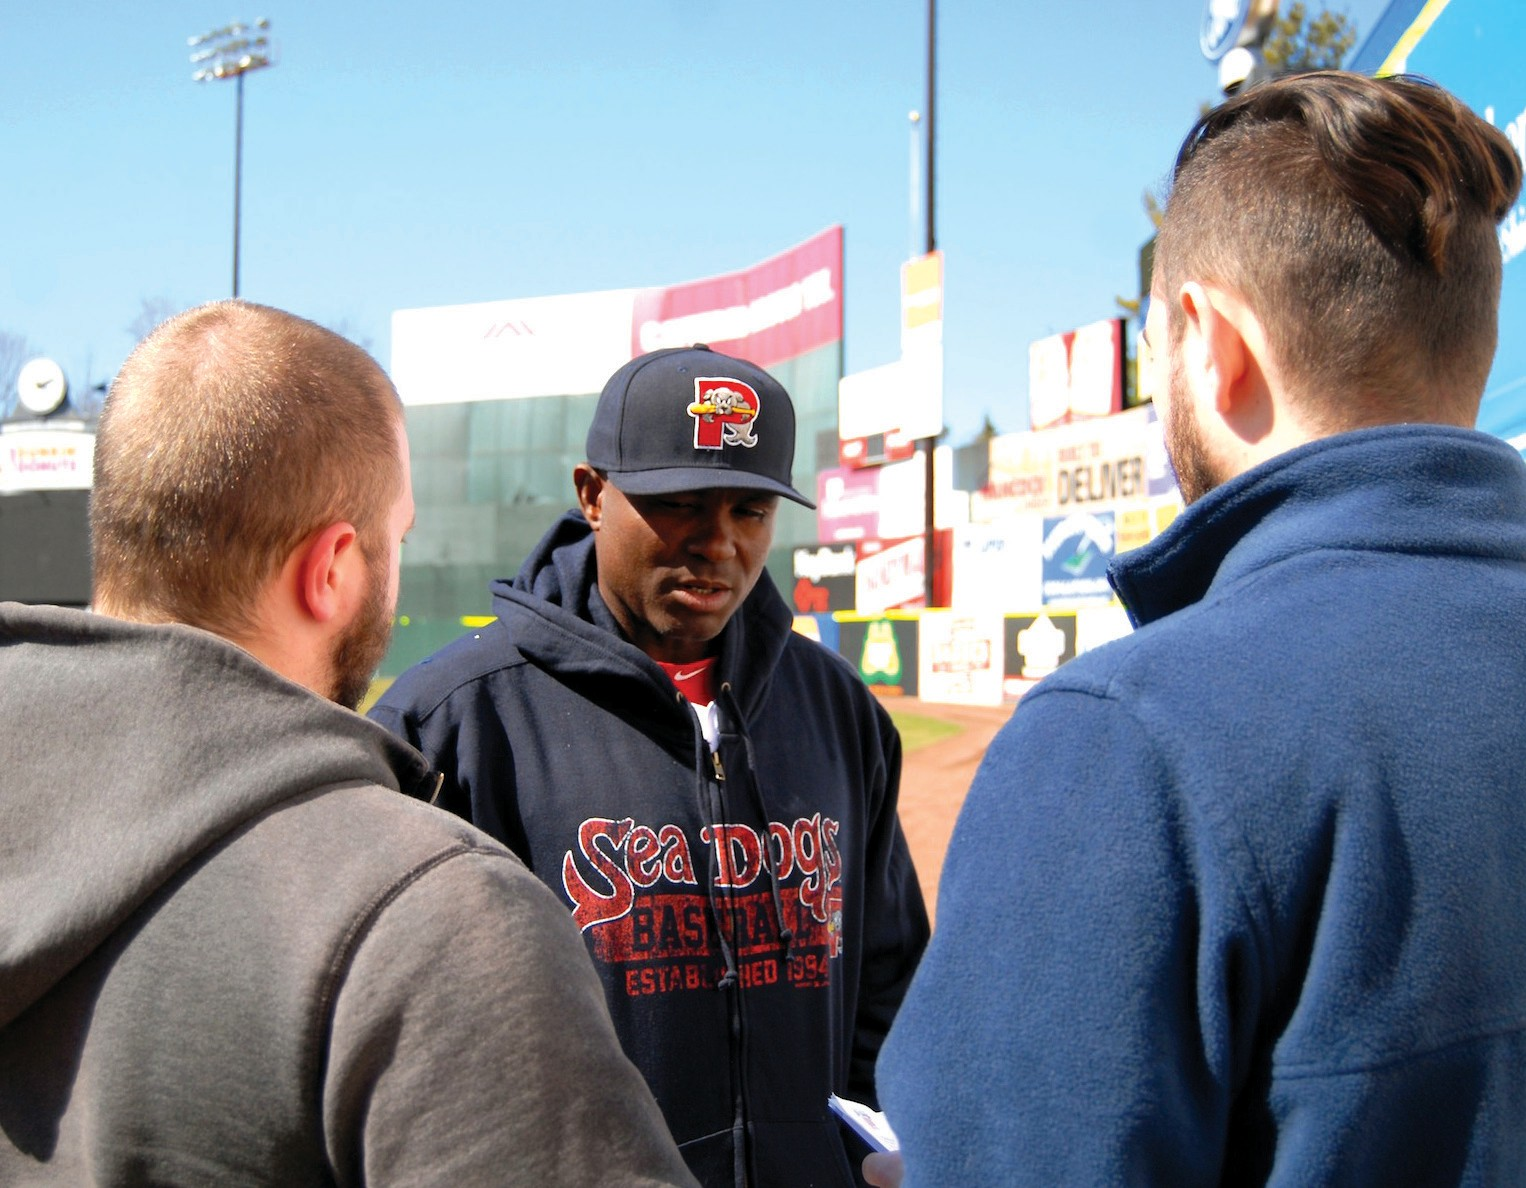 Portland Sea Dogs manager Carlos Febles (center) talks with Alex Sponseller (left) of the Journal Tribune and Christian Sandler (right) of the Brunswick Times Record during Media Day on Tuesday at Hadlock Field.